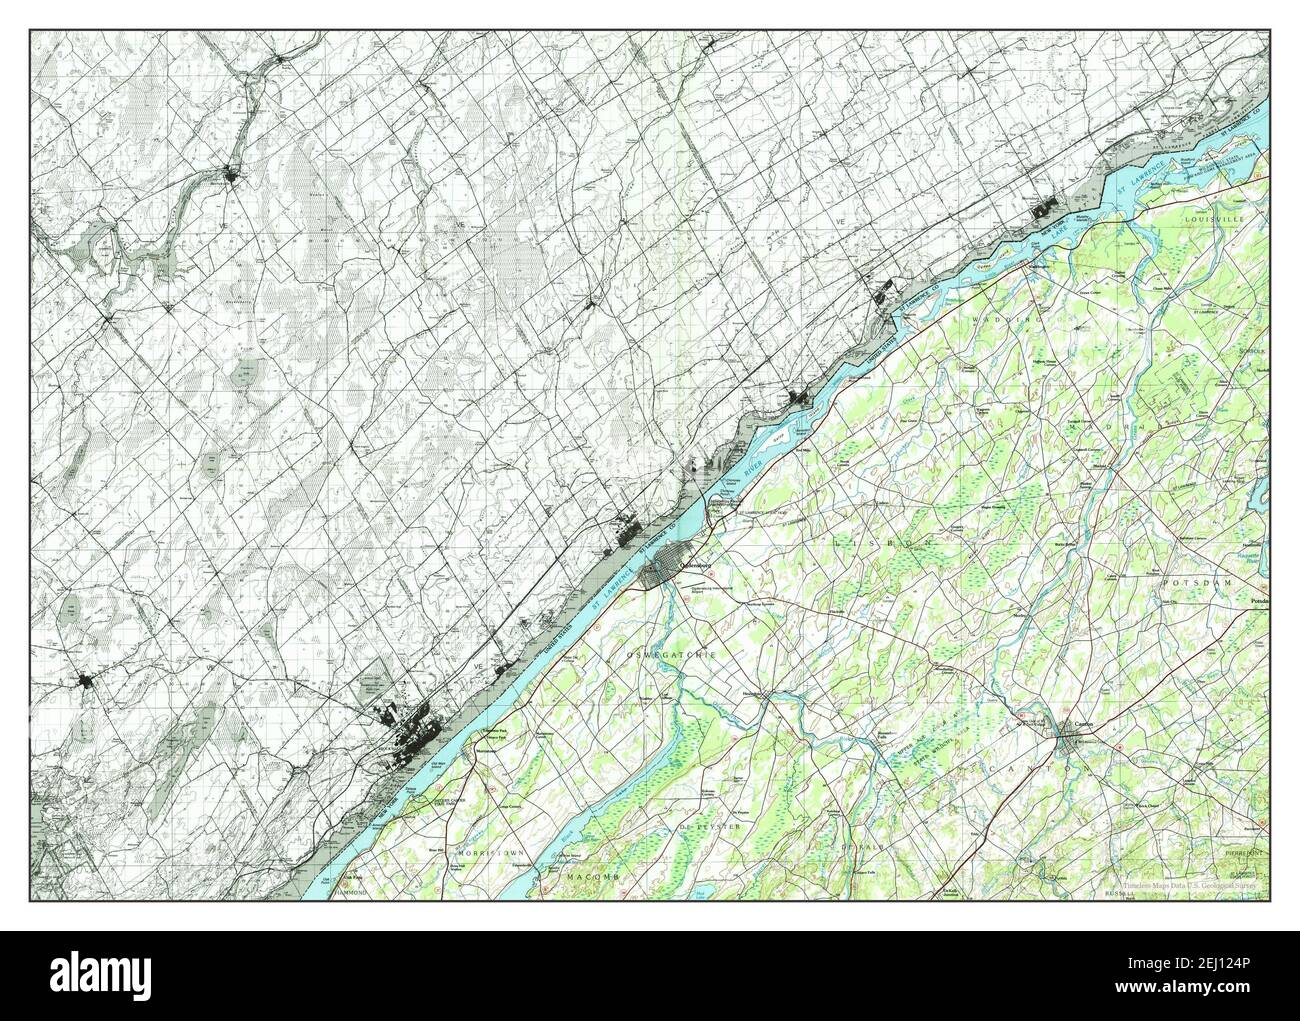 Ogdensburg, New York, map 1985, 1:100000, United States of America by Timeless Maps, data U.S. Geological Survey Stock Photo